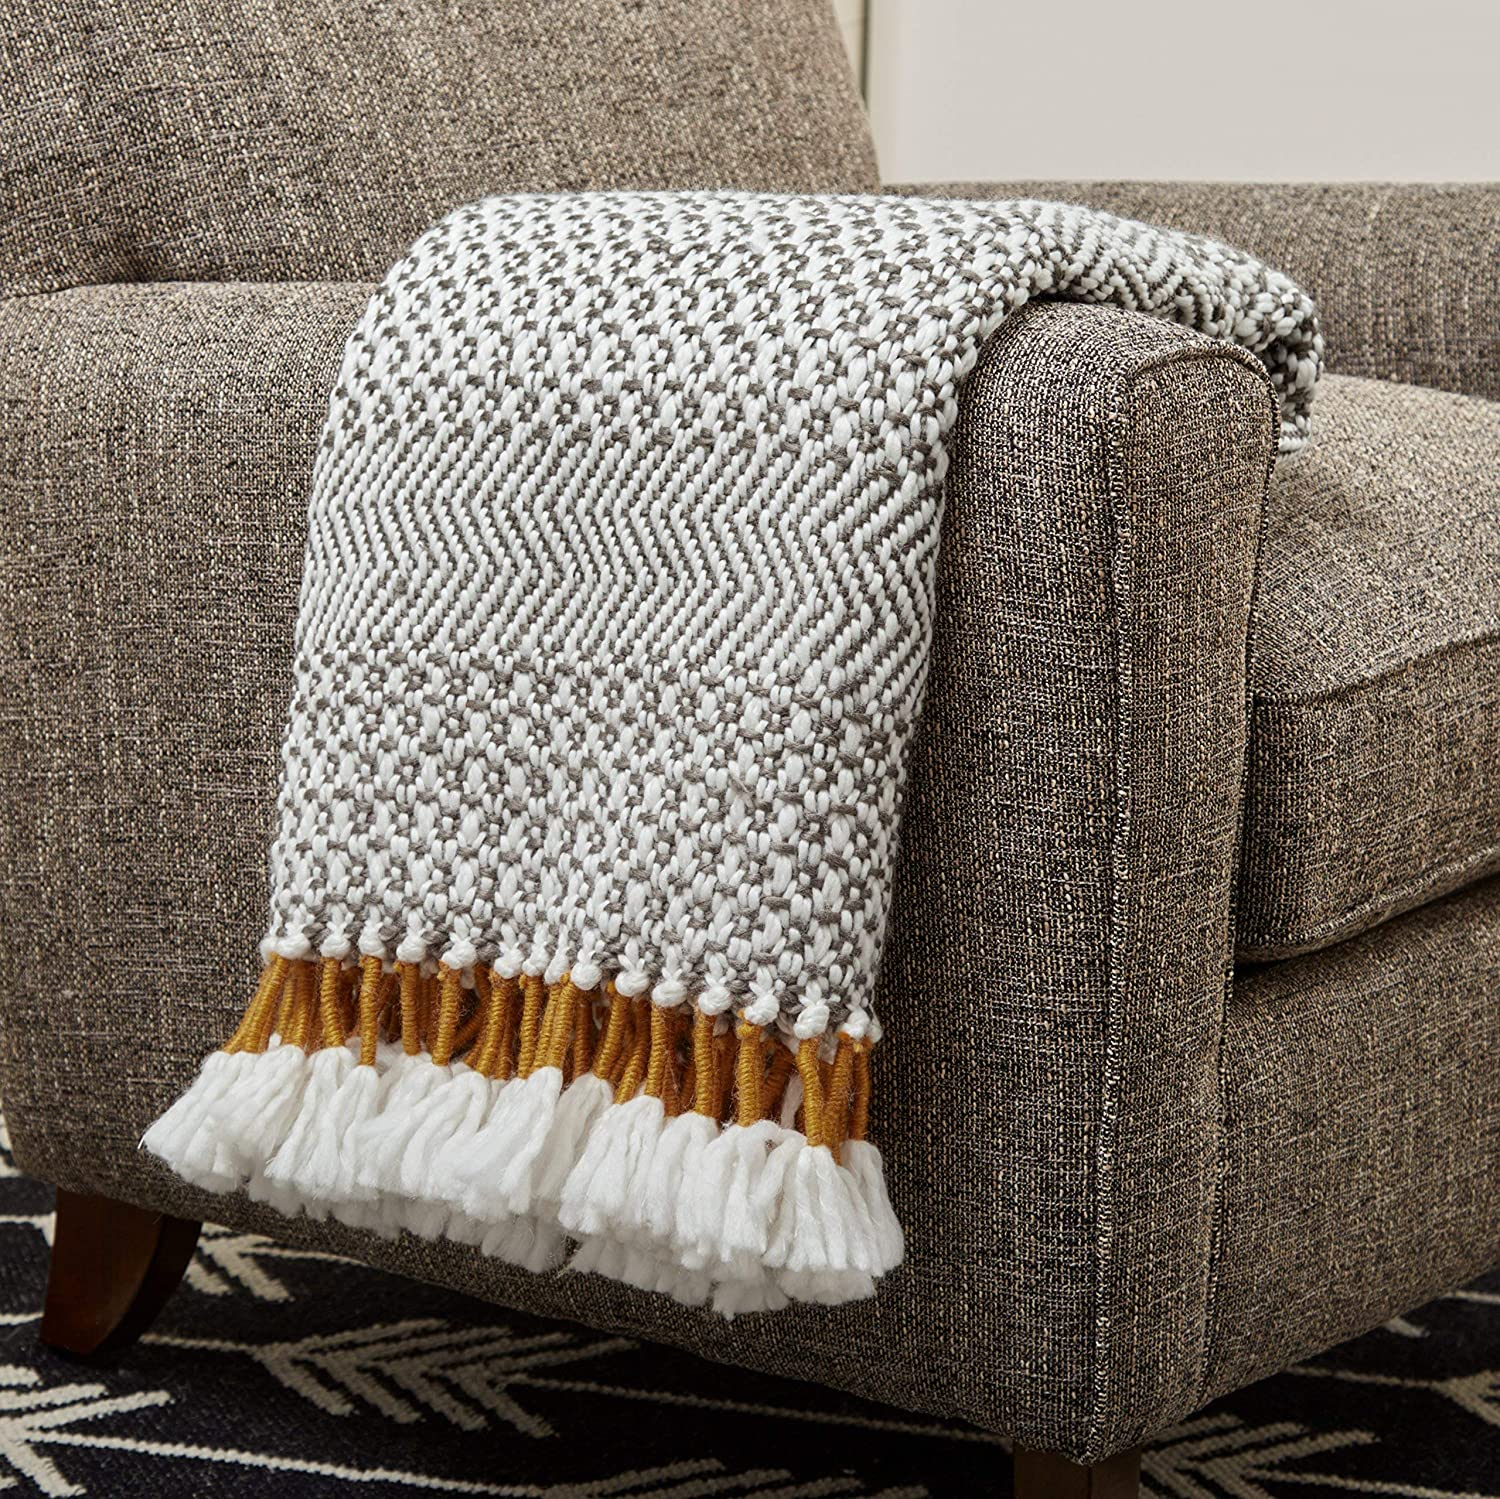 "Rivet Modern Hand-Woven Stripe Fringe Throw Blanket, Soft and Stylish, 50"" x 60"", Charcoal"